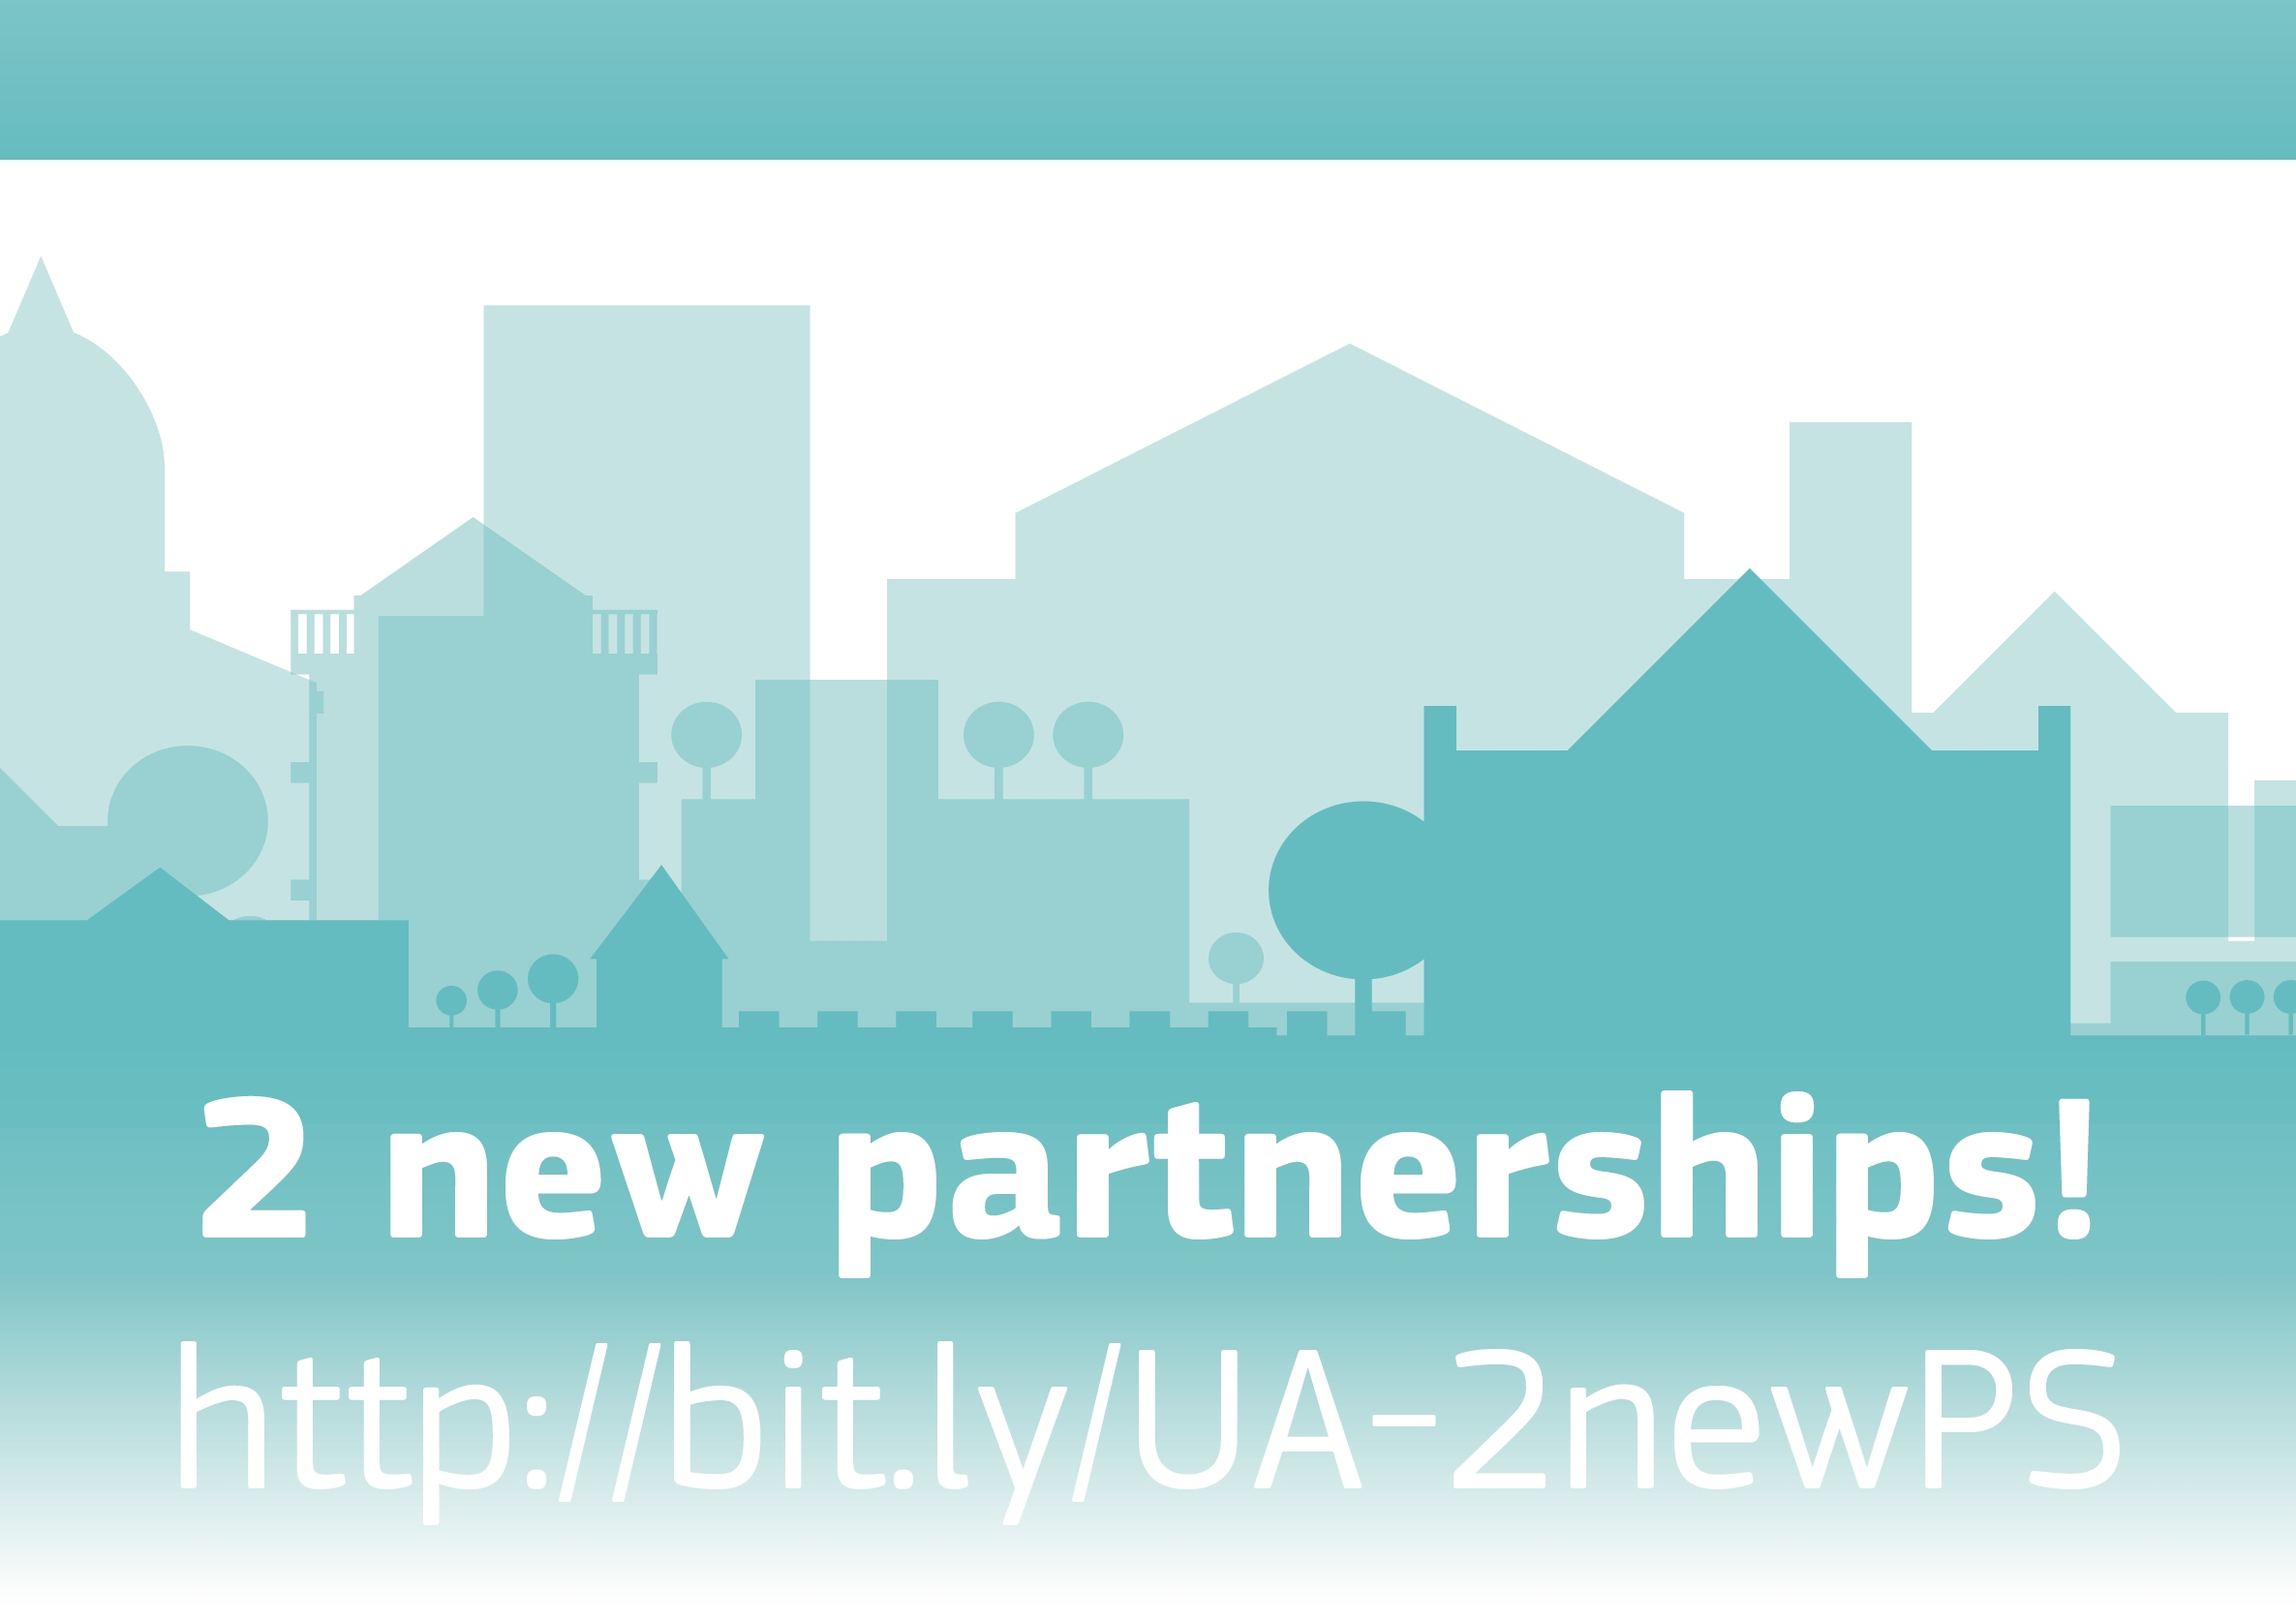 urban agenda skyline, 2 new partnerships with link